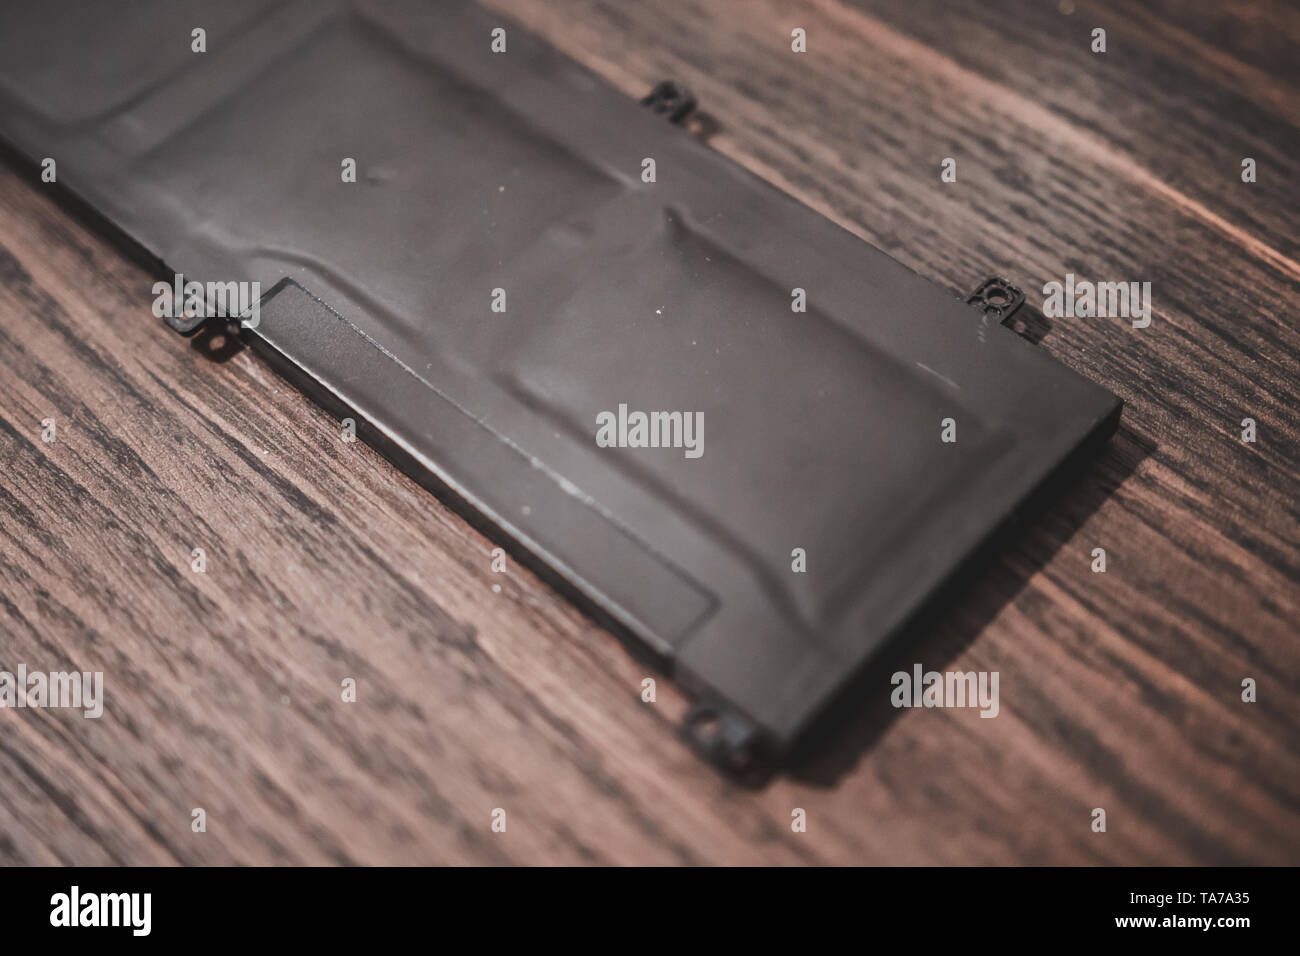 Swollen Lithium Polymer (Li-Po) laptop battery on a wooden table. Known issue for modern laptop and gadget - Stock Image